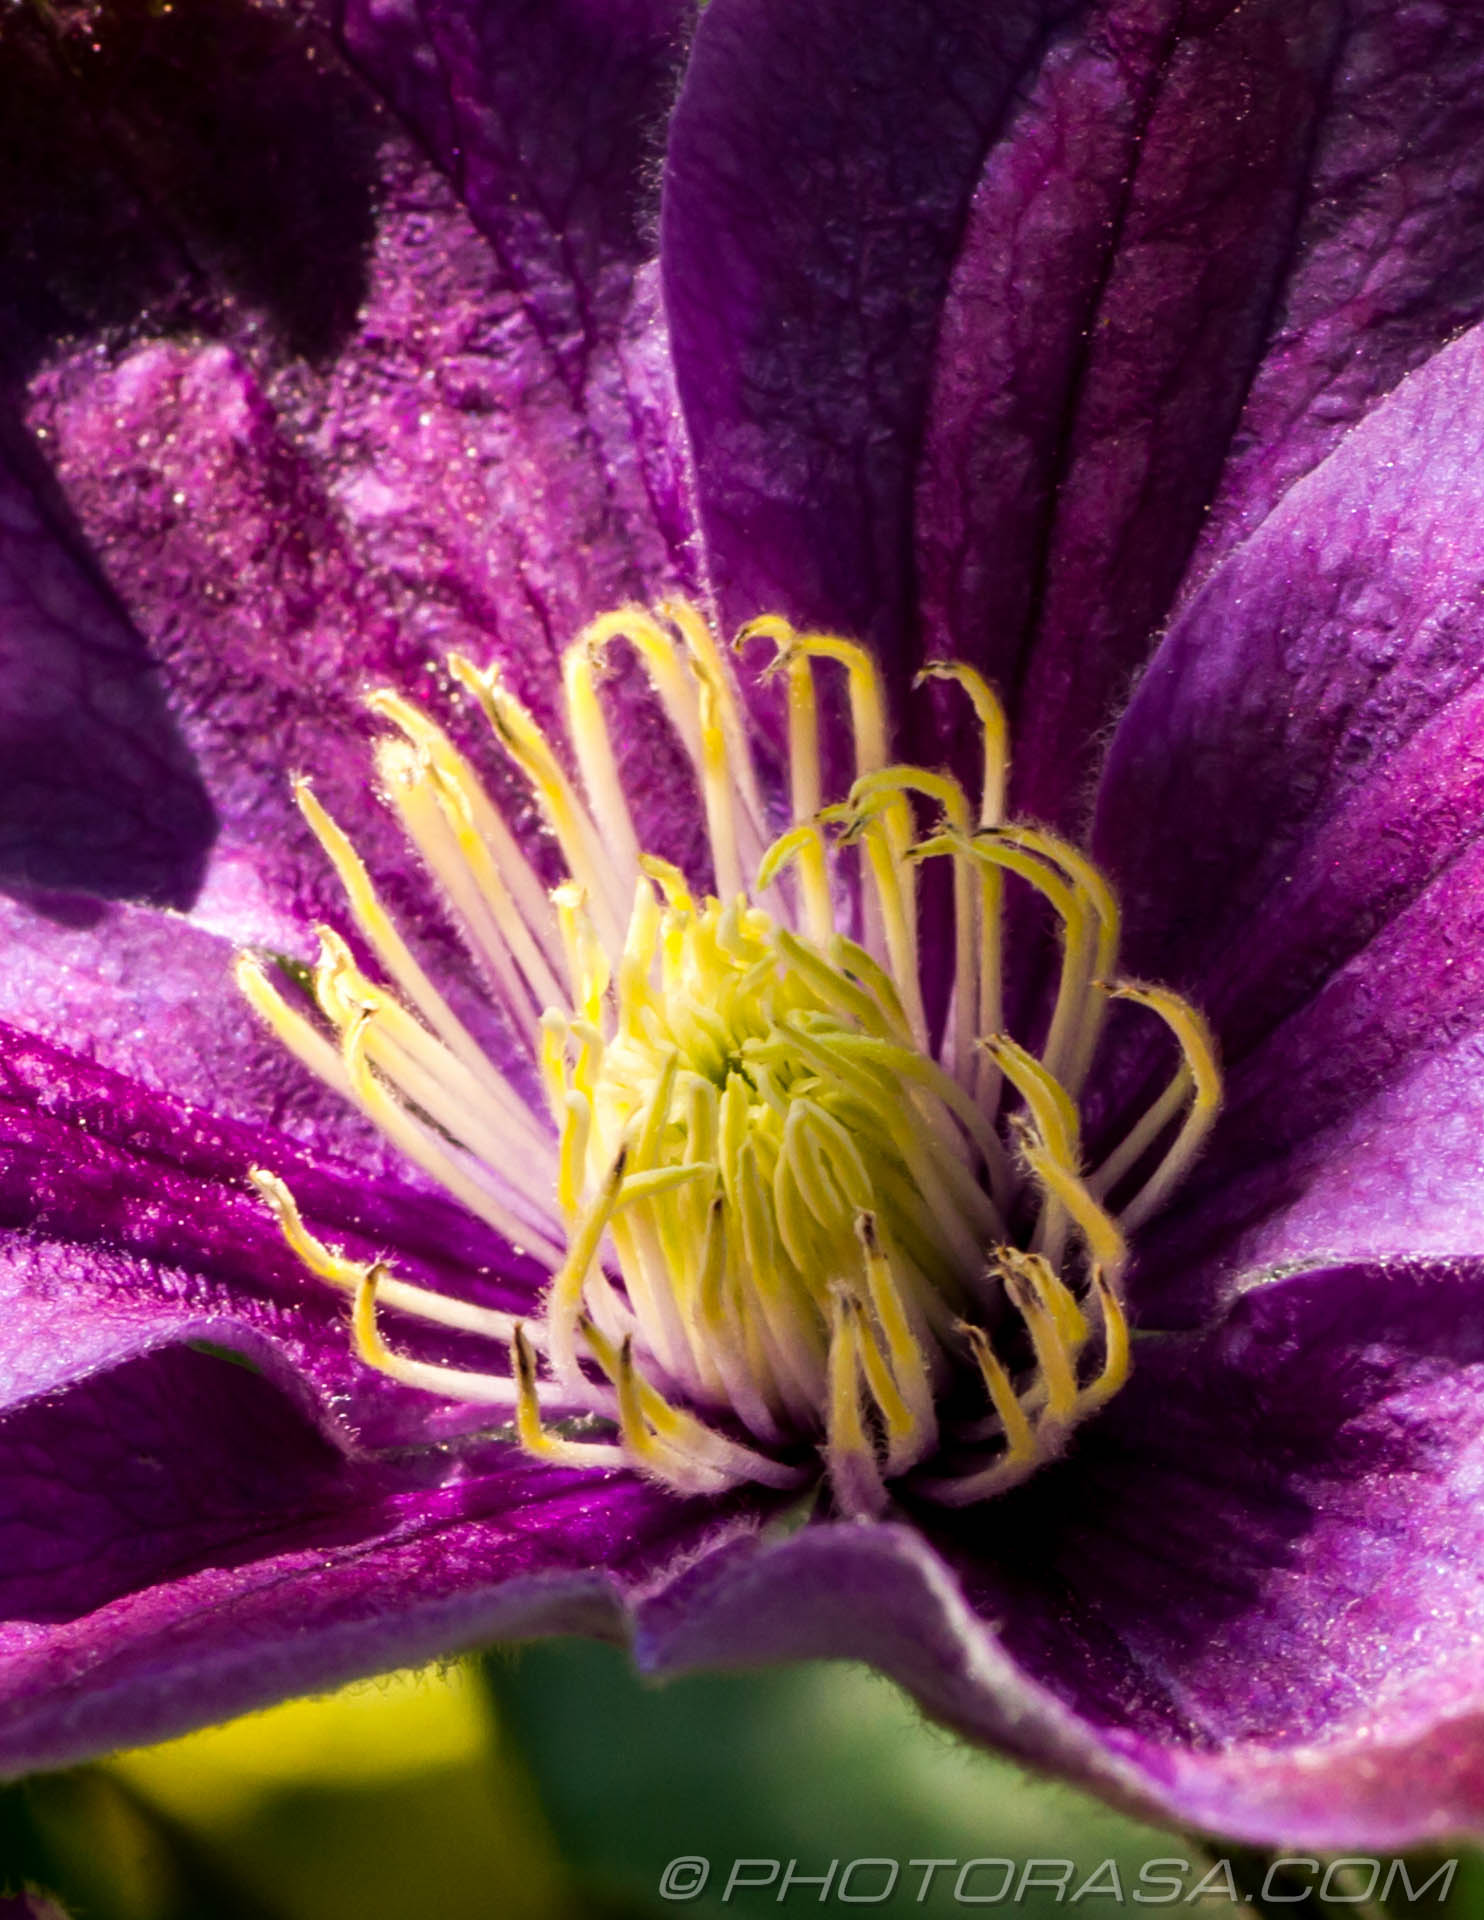 http://photorasa.com/nature/strange-exotic-flowers/attachment/yellow-finger-stamen-of-clematis/